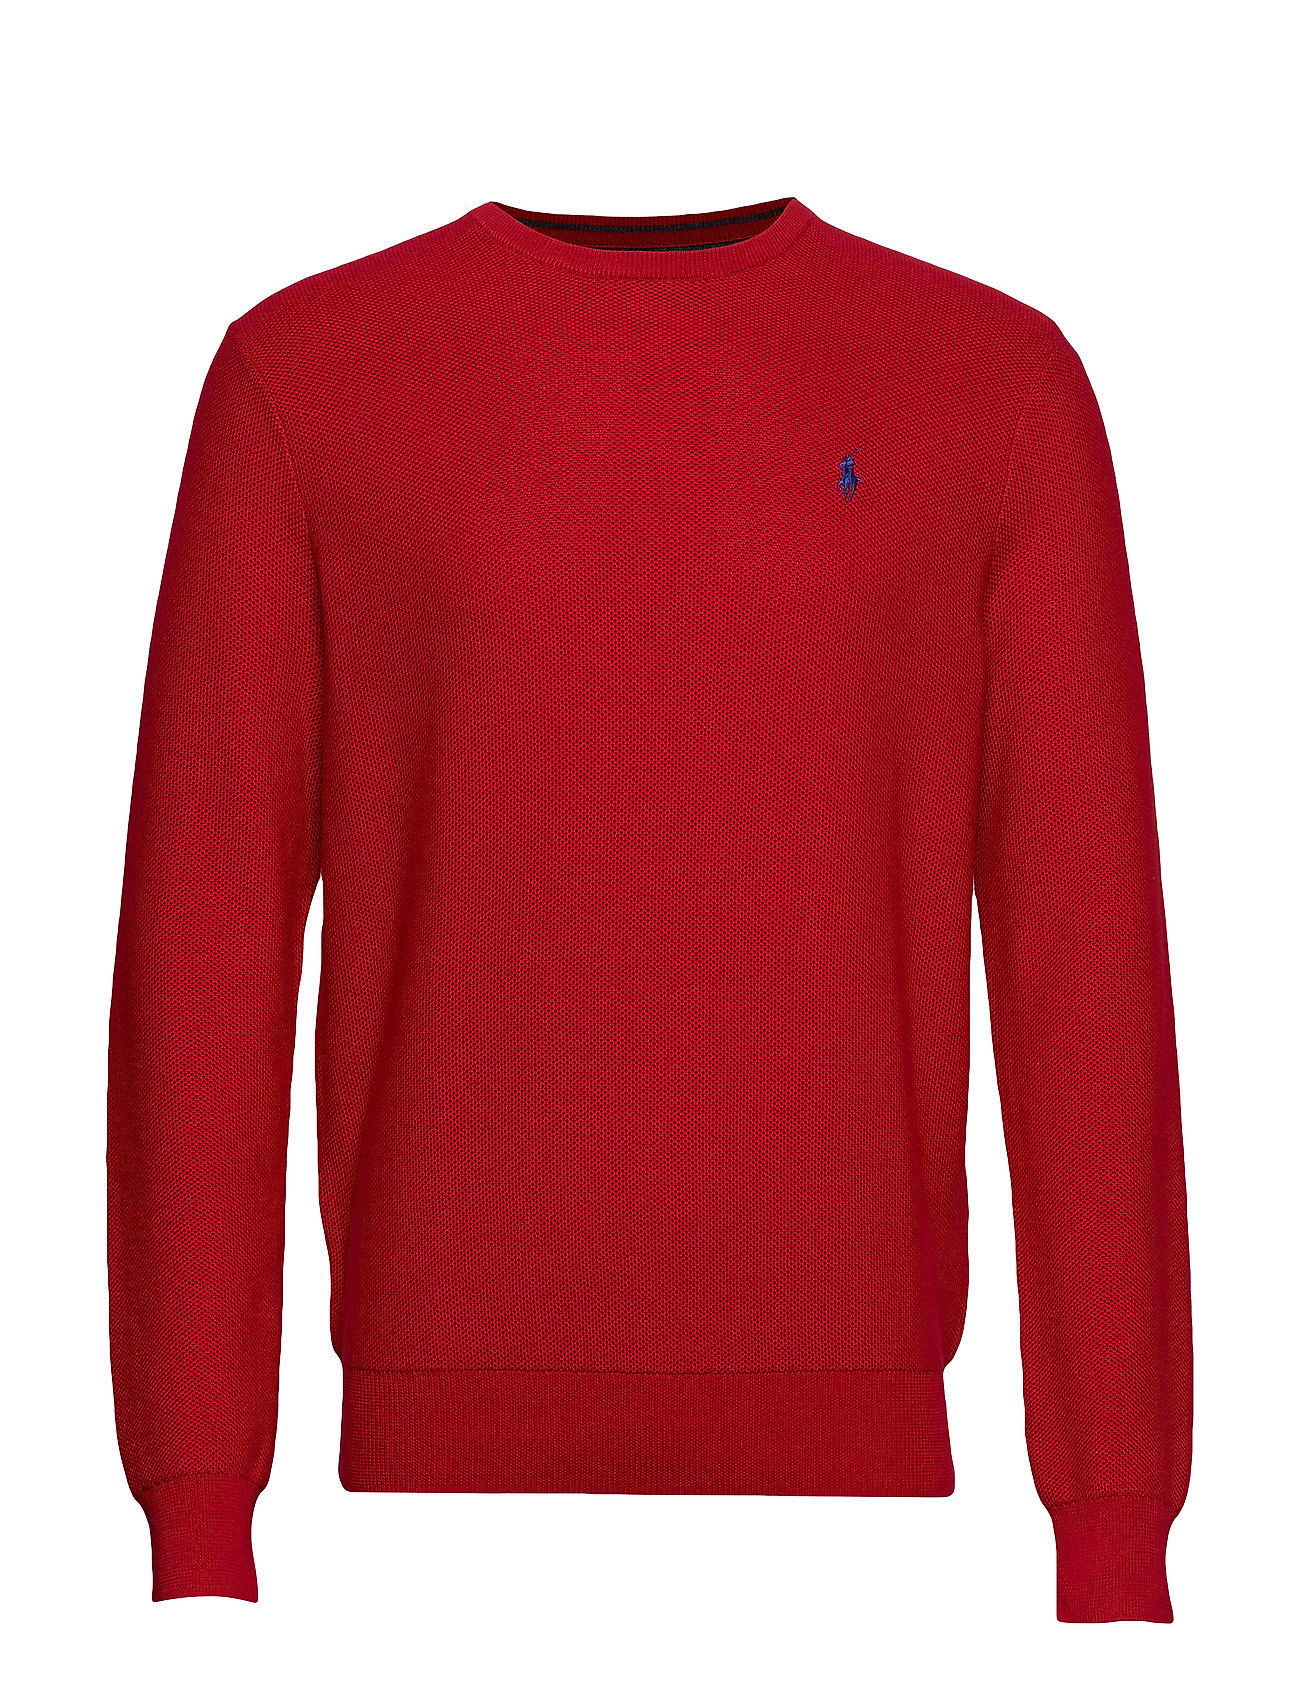 Polo Ralph Lauren Cotton Crewneck Sweater - PARK AVENUE RED